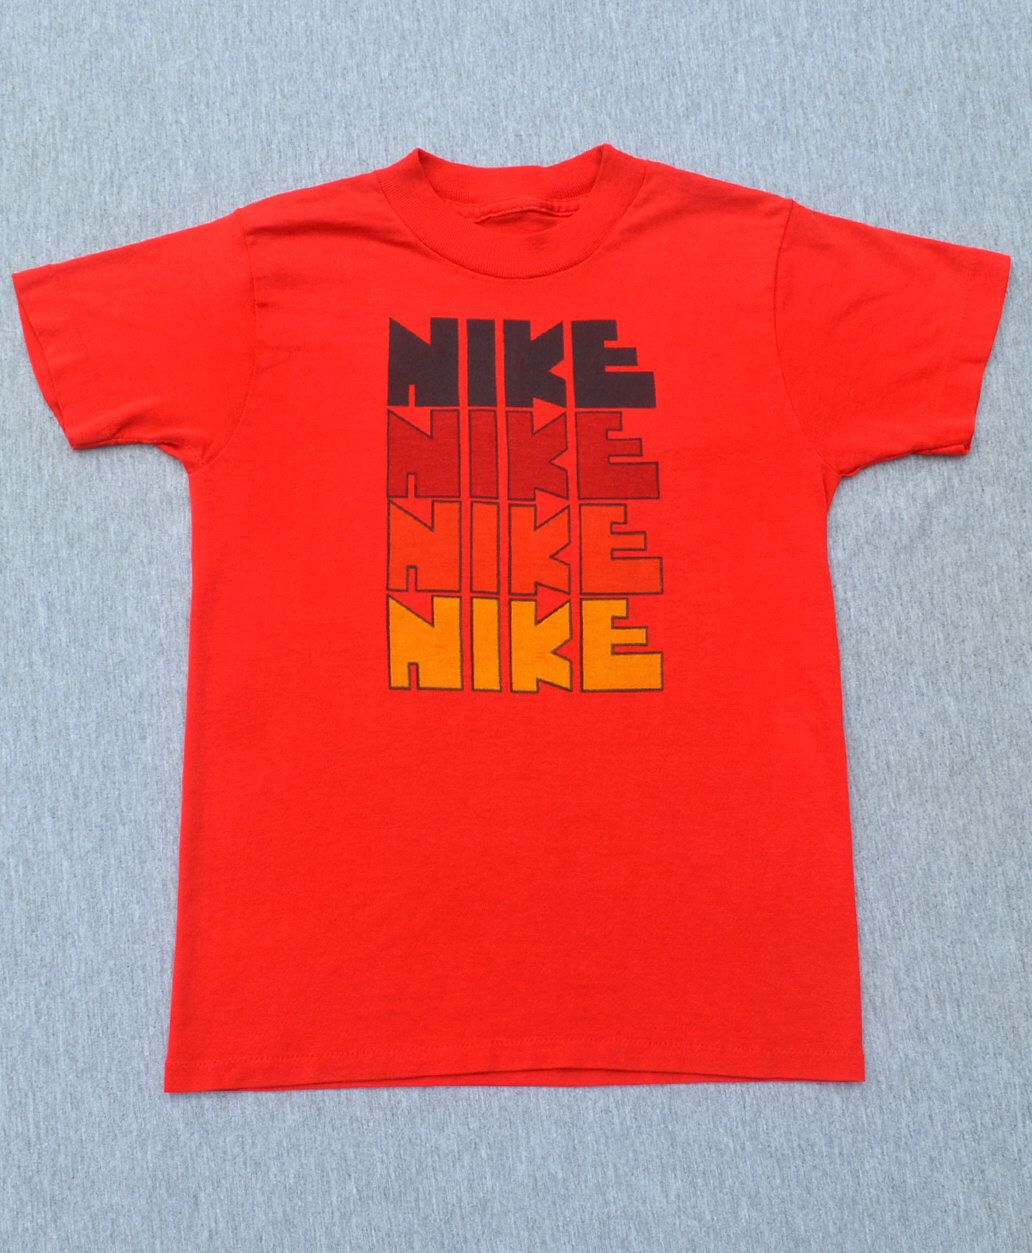 vintage 70s tee shirt NIKE rough block letters red rainbow authentic t-shirt  XS XXS